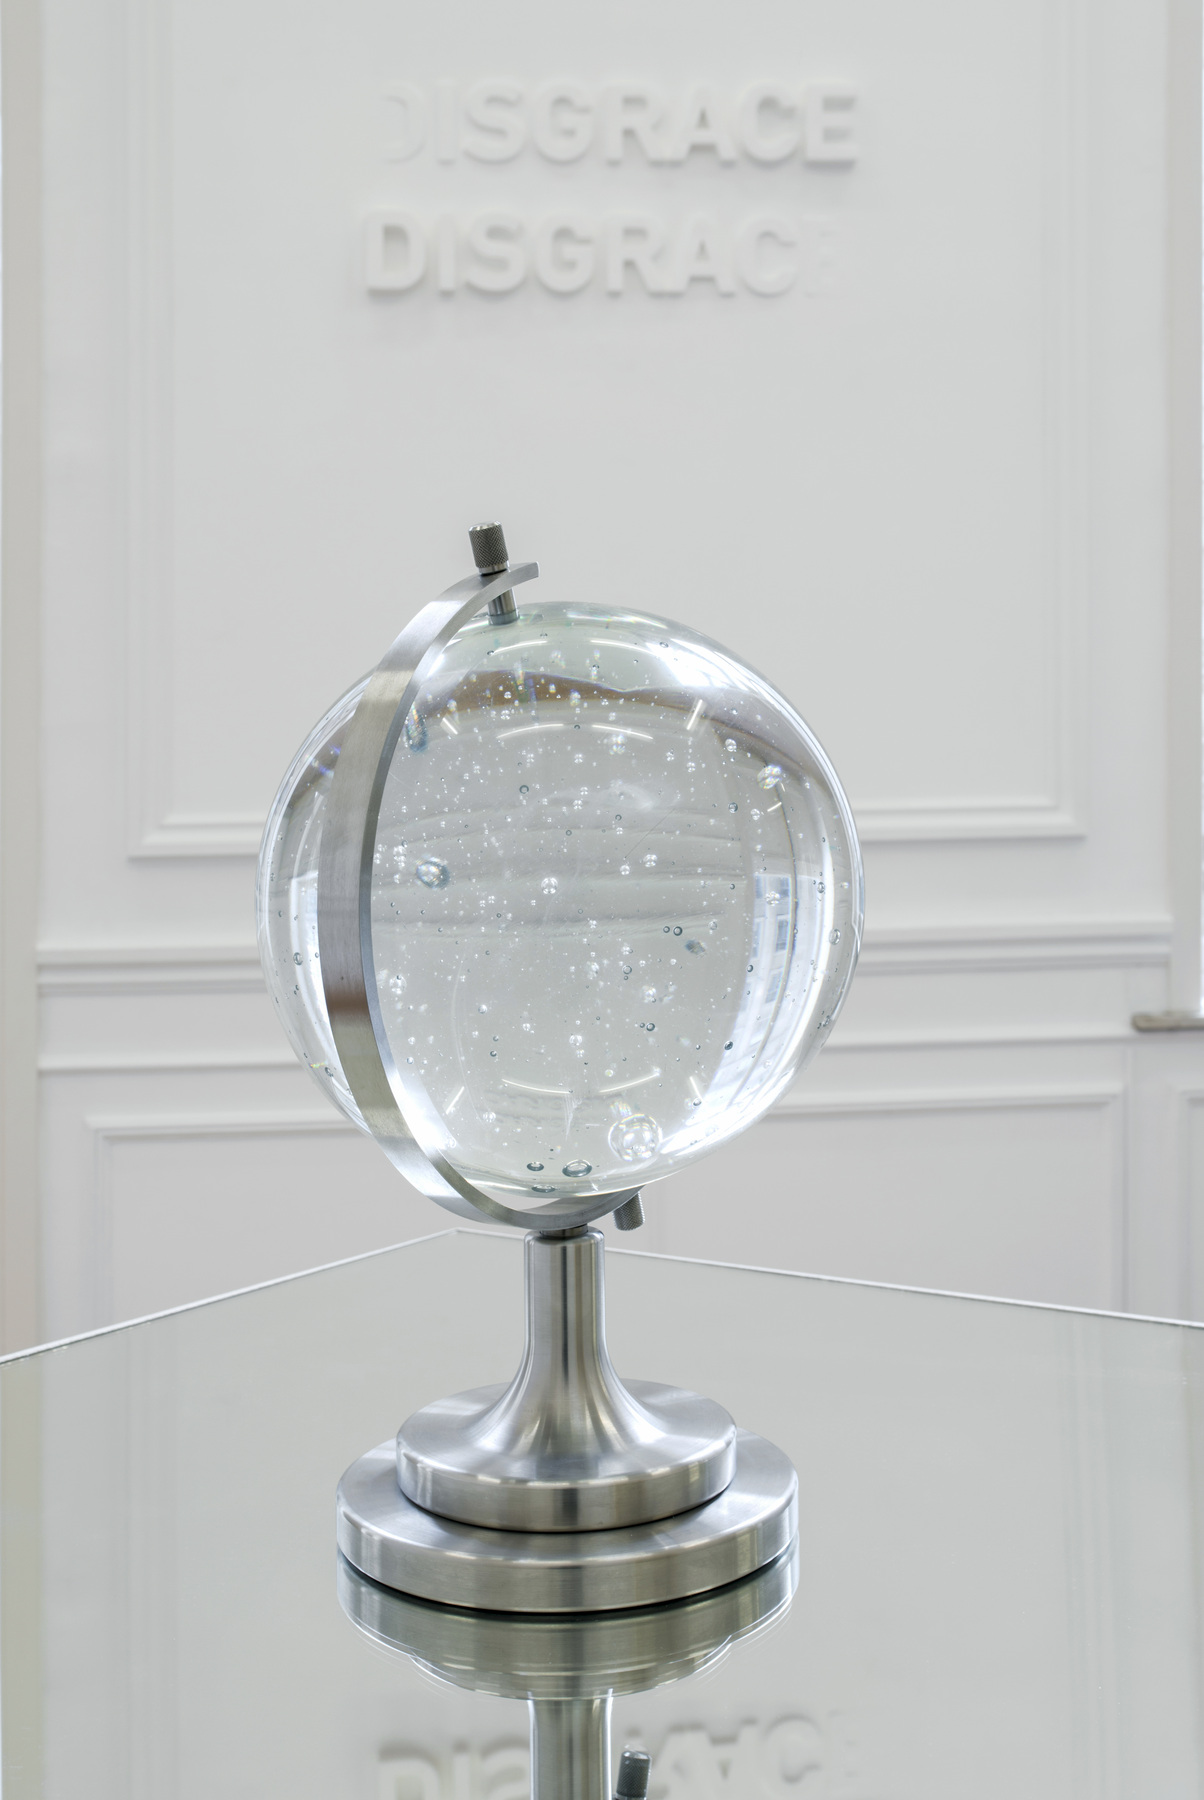 Melik Ohanian, Futuring (cosmos), 2011, Glass, metal, mirror, Glass ball Ø 30 cm, Pedestal and mirror 100 x 100 x 100cm, 1_3 (02)